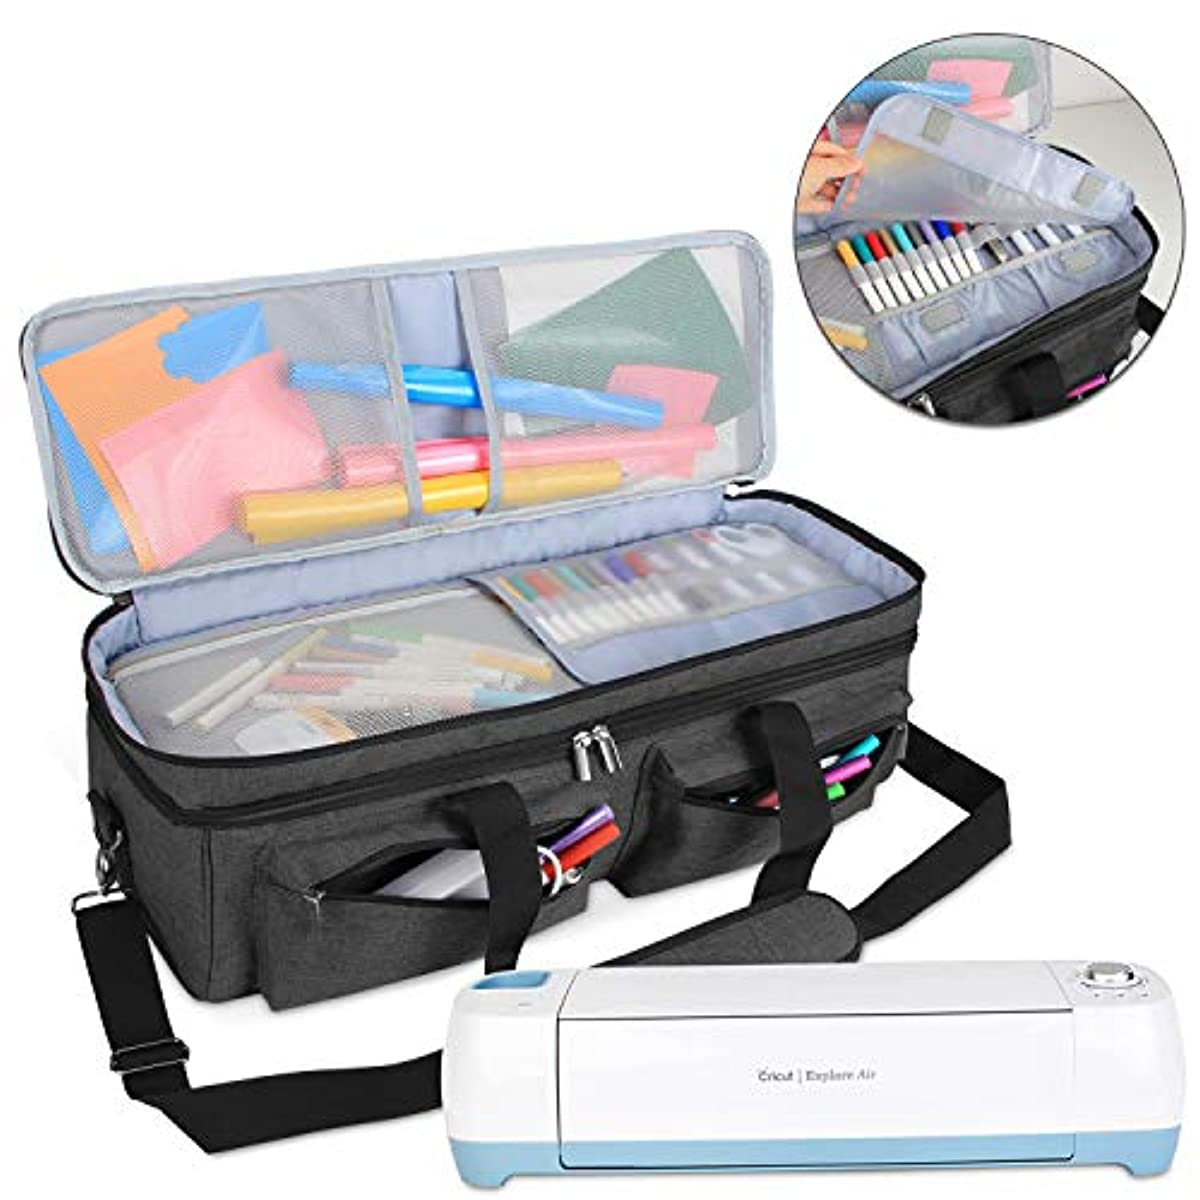 Luxja Double-Layer Bag Compatible with Cricut Explore Air (Air2) and Maker, Carrying Bag Compatible with Cricut Die-Cut Machine and Supplies (Bag Only, Patent Pending), Black